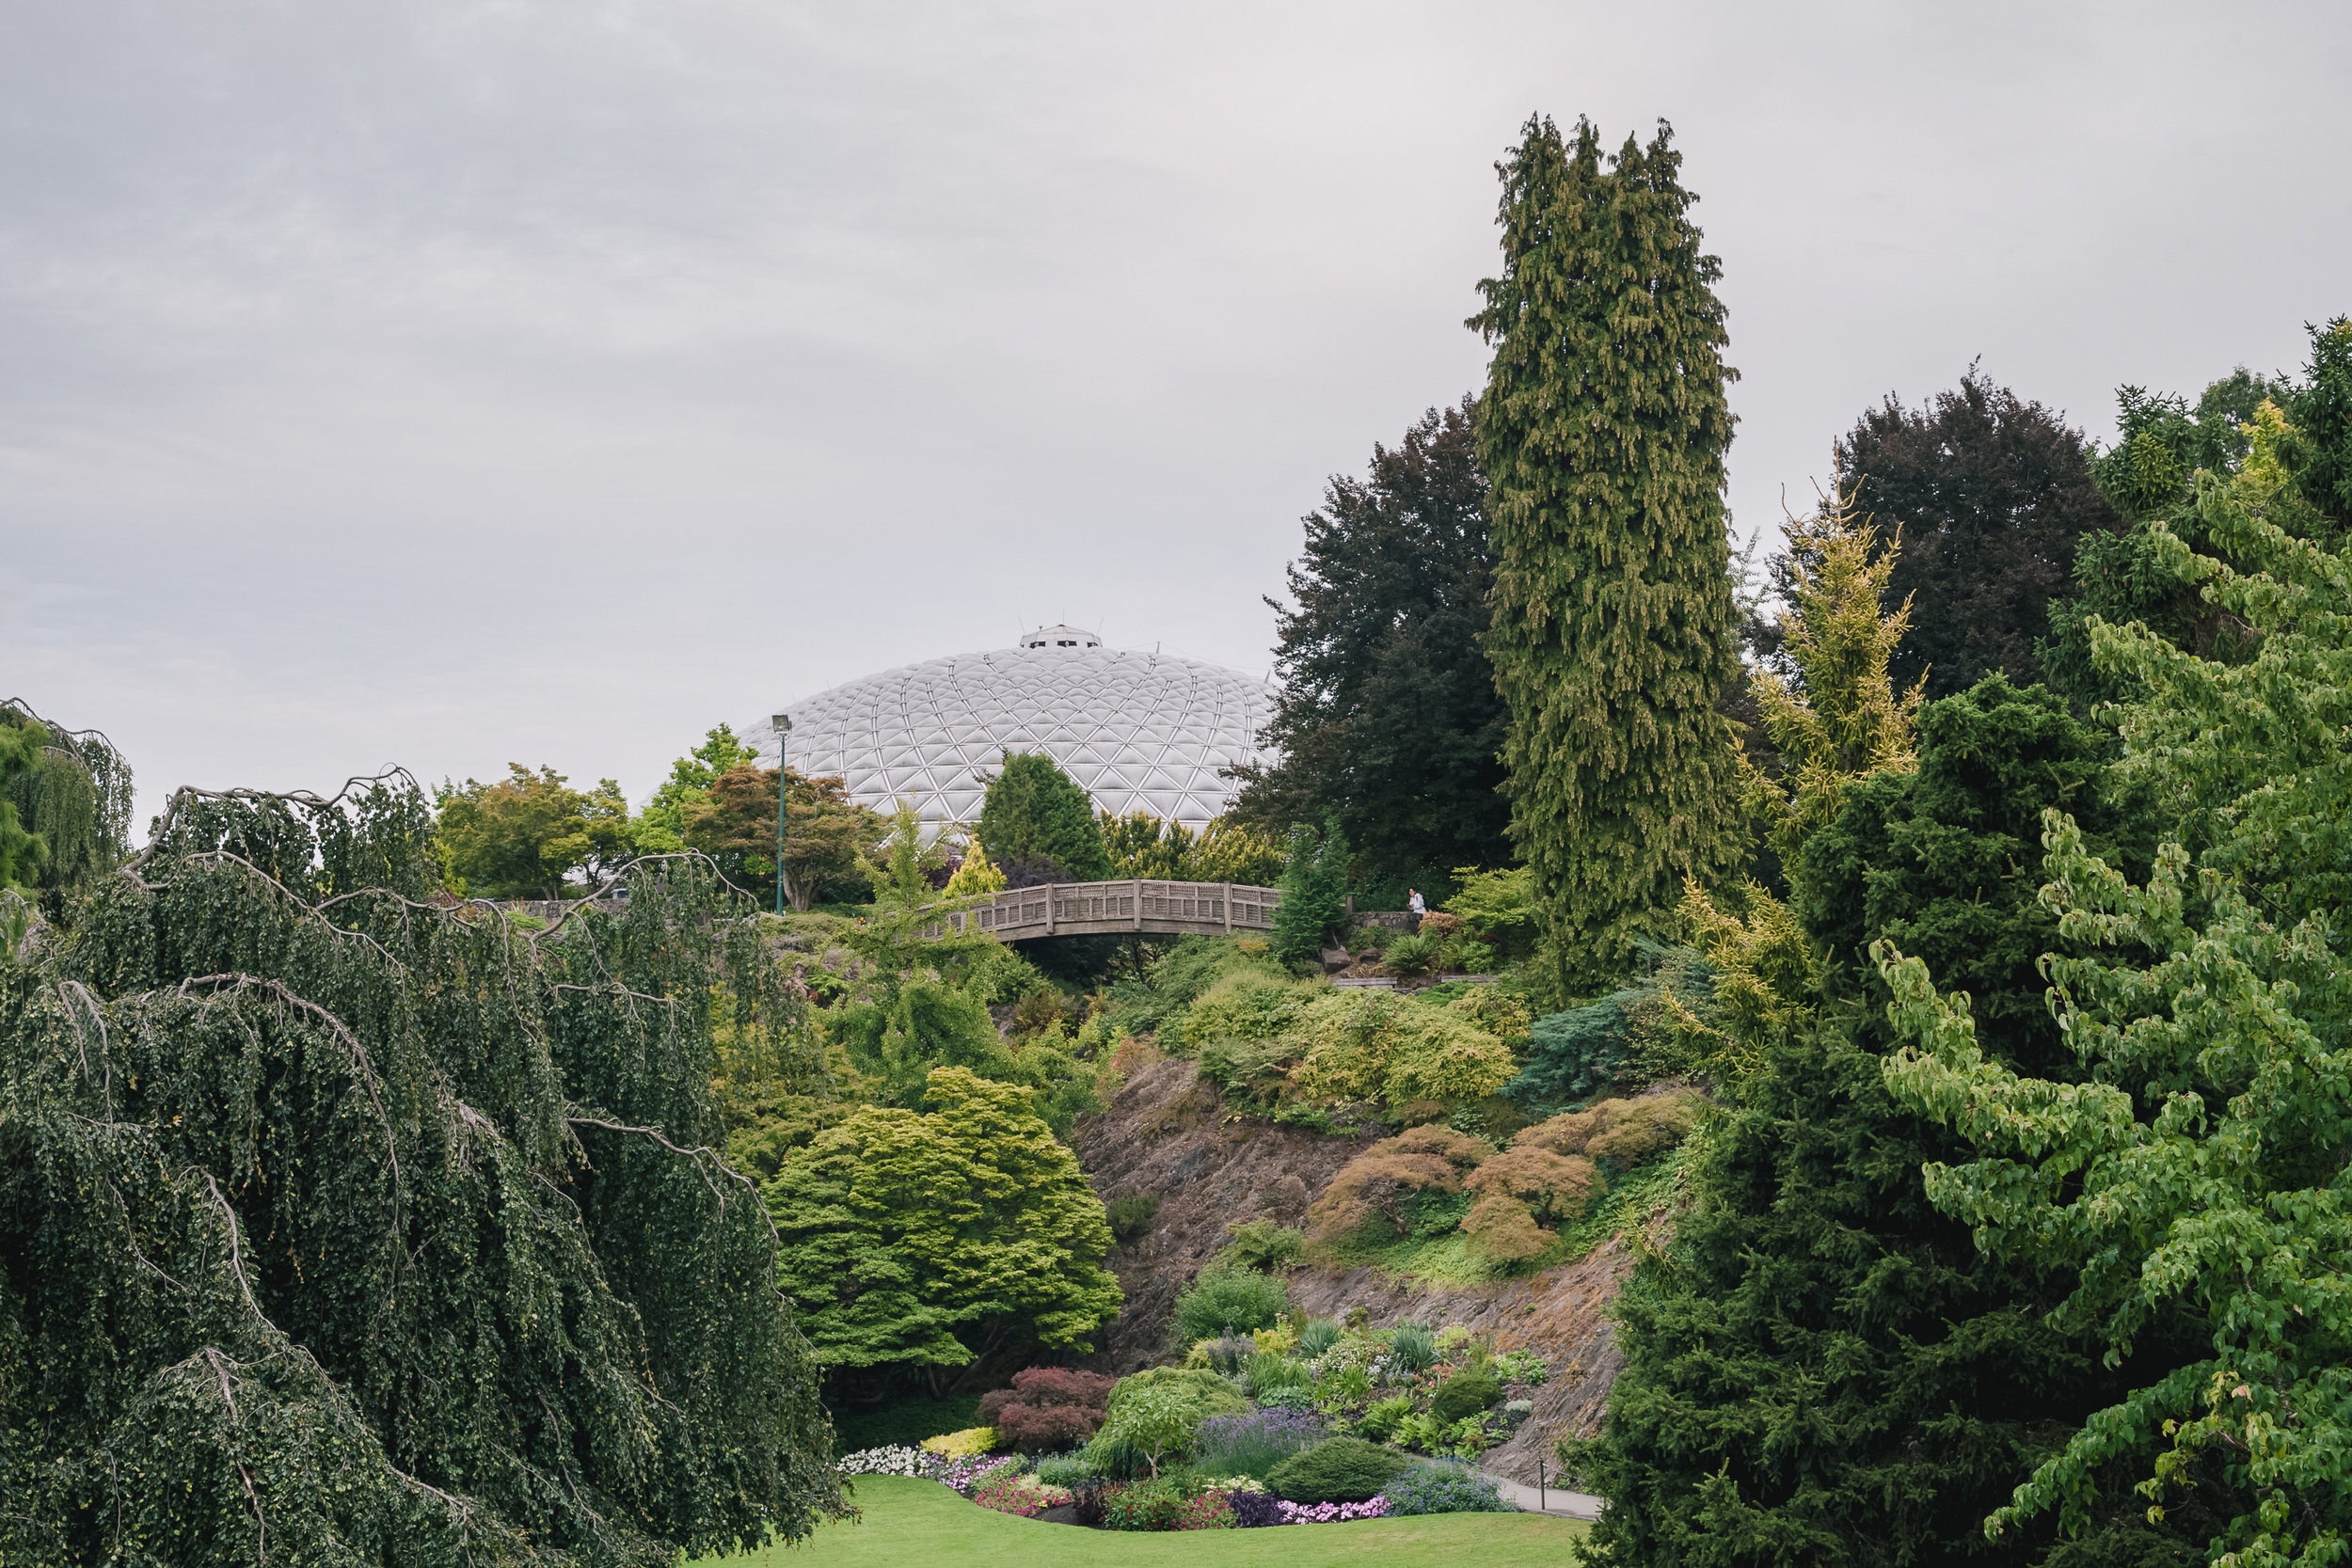 The Large Quarry Garden & Bloedel Conservatory